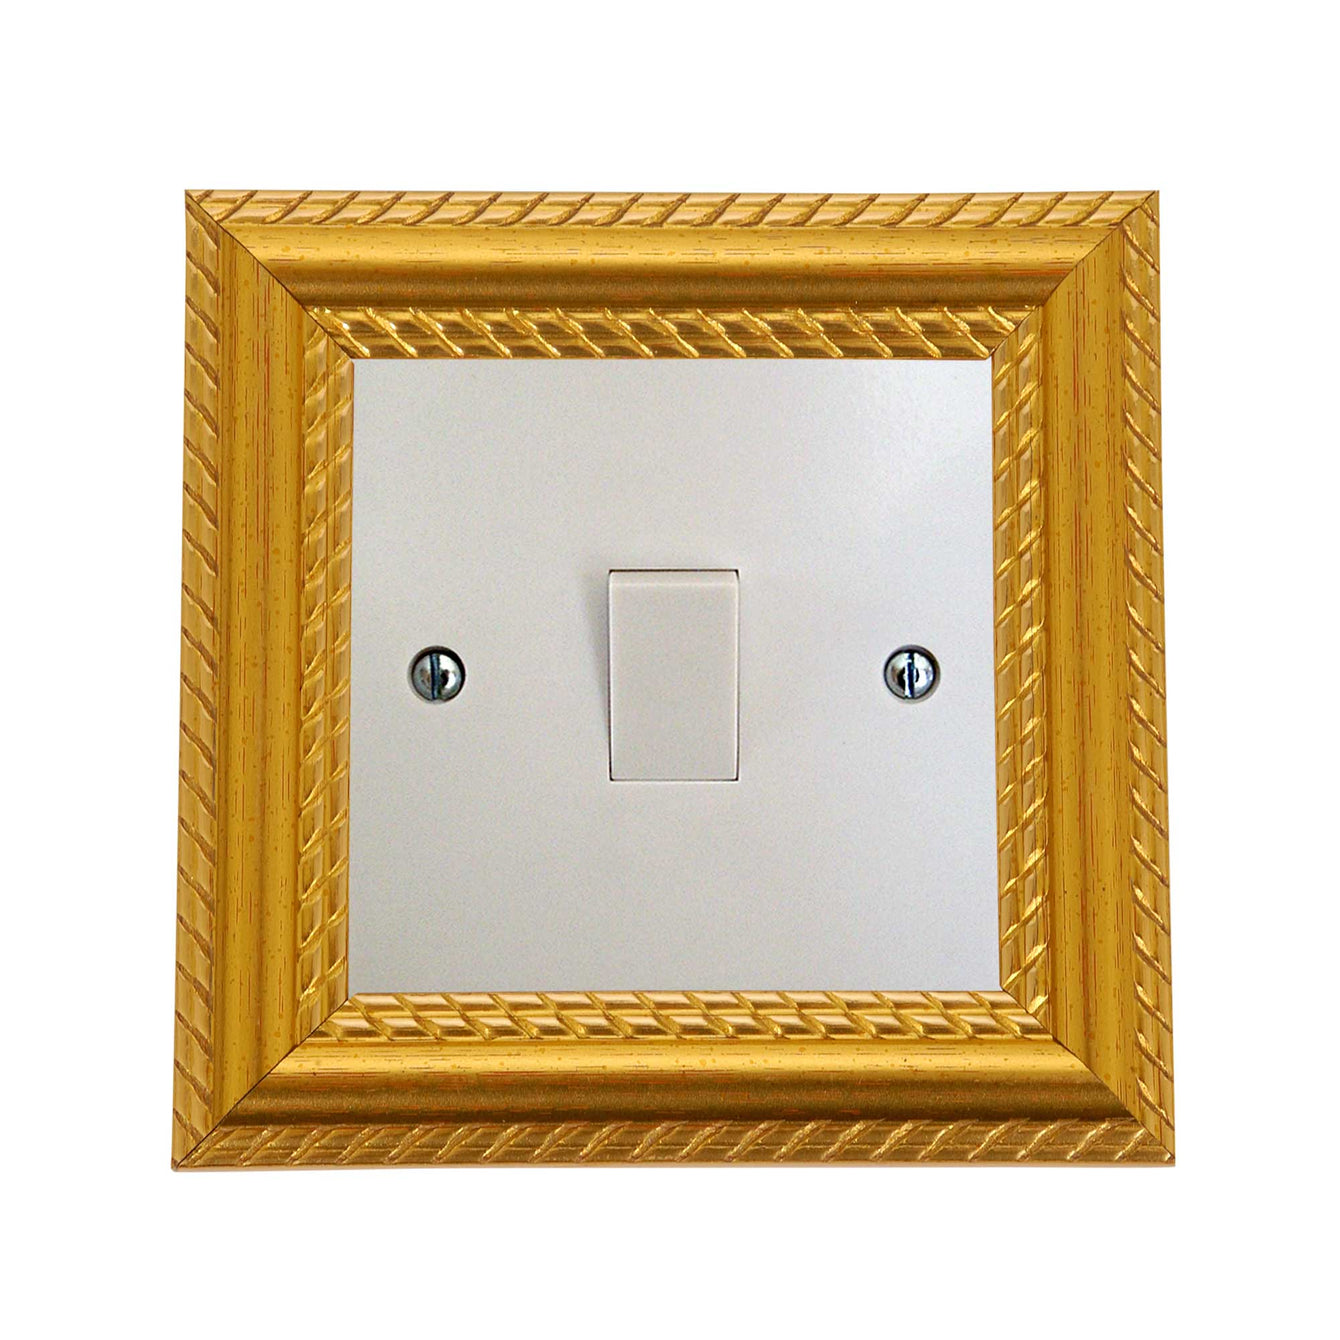 ElekTek Switch Surround Georgian Gold Rope Effect Frame Cover Finger Plate - Buy It Better